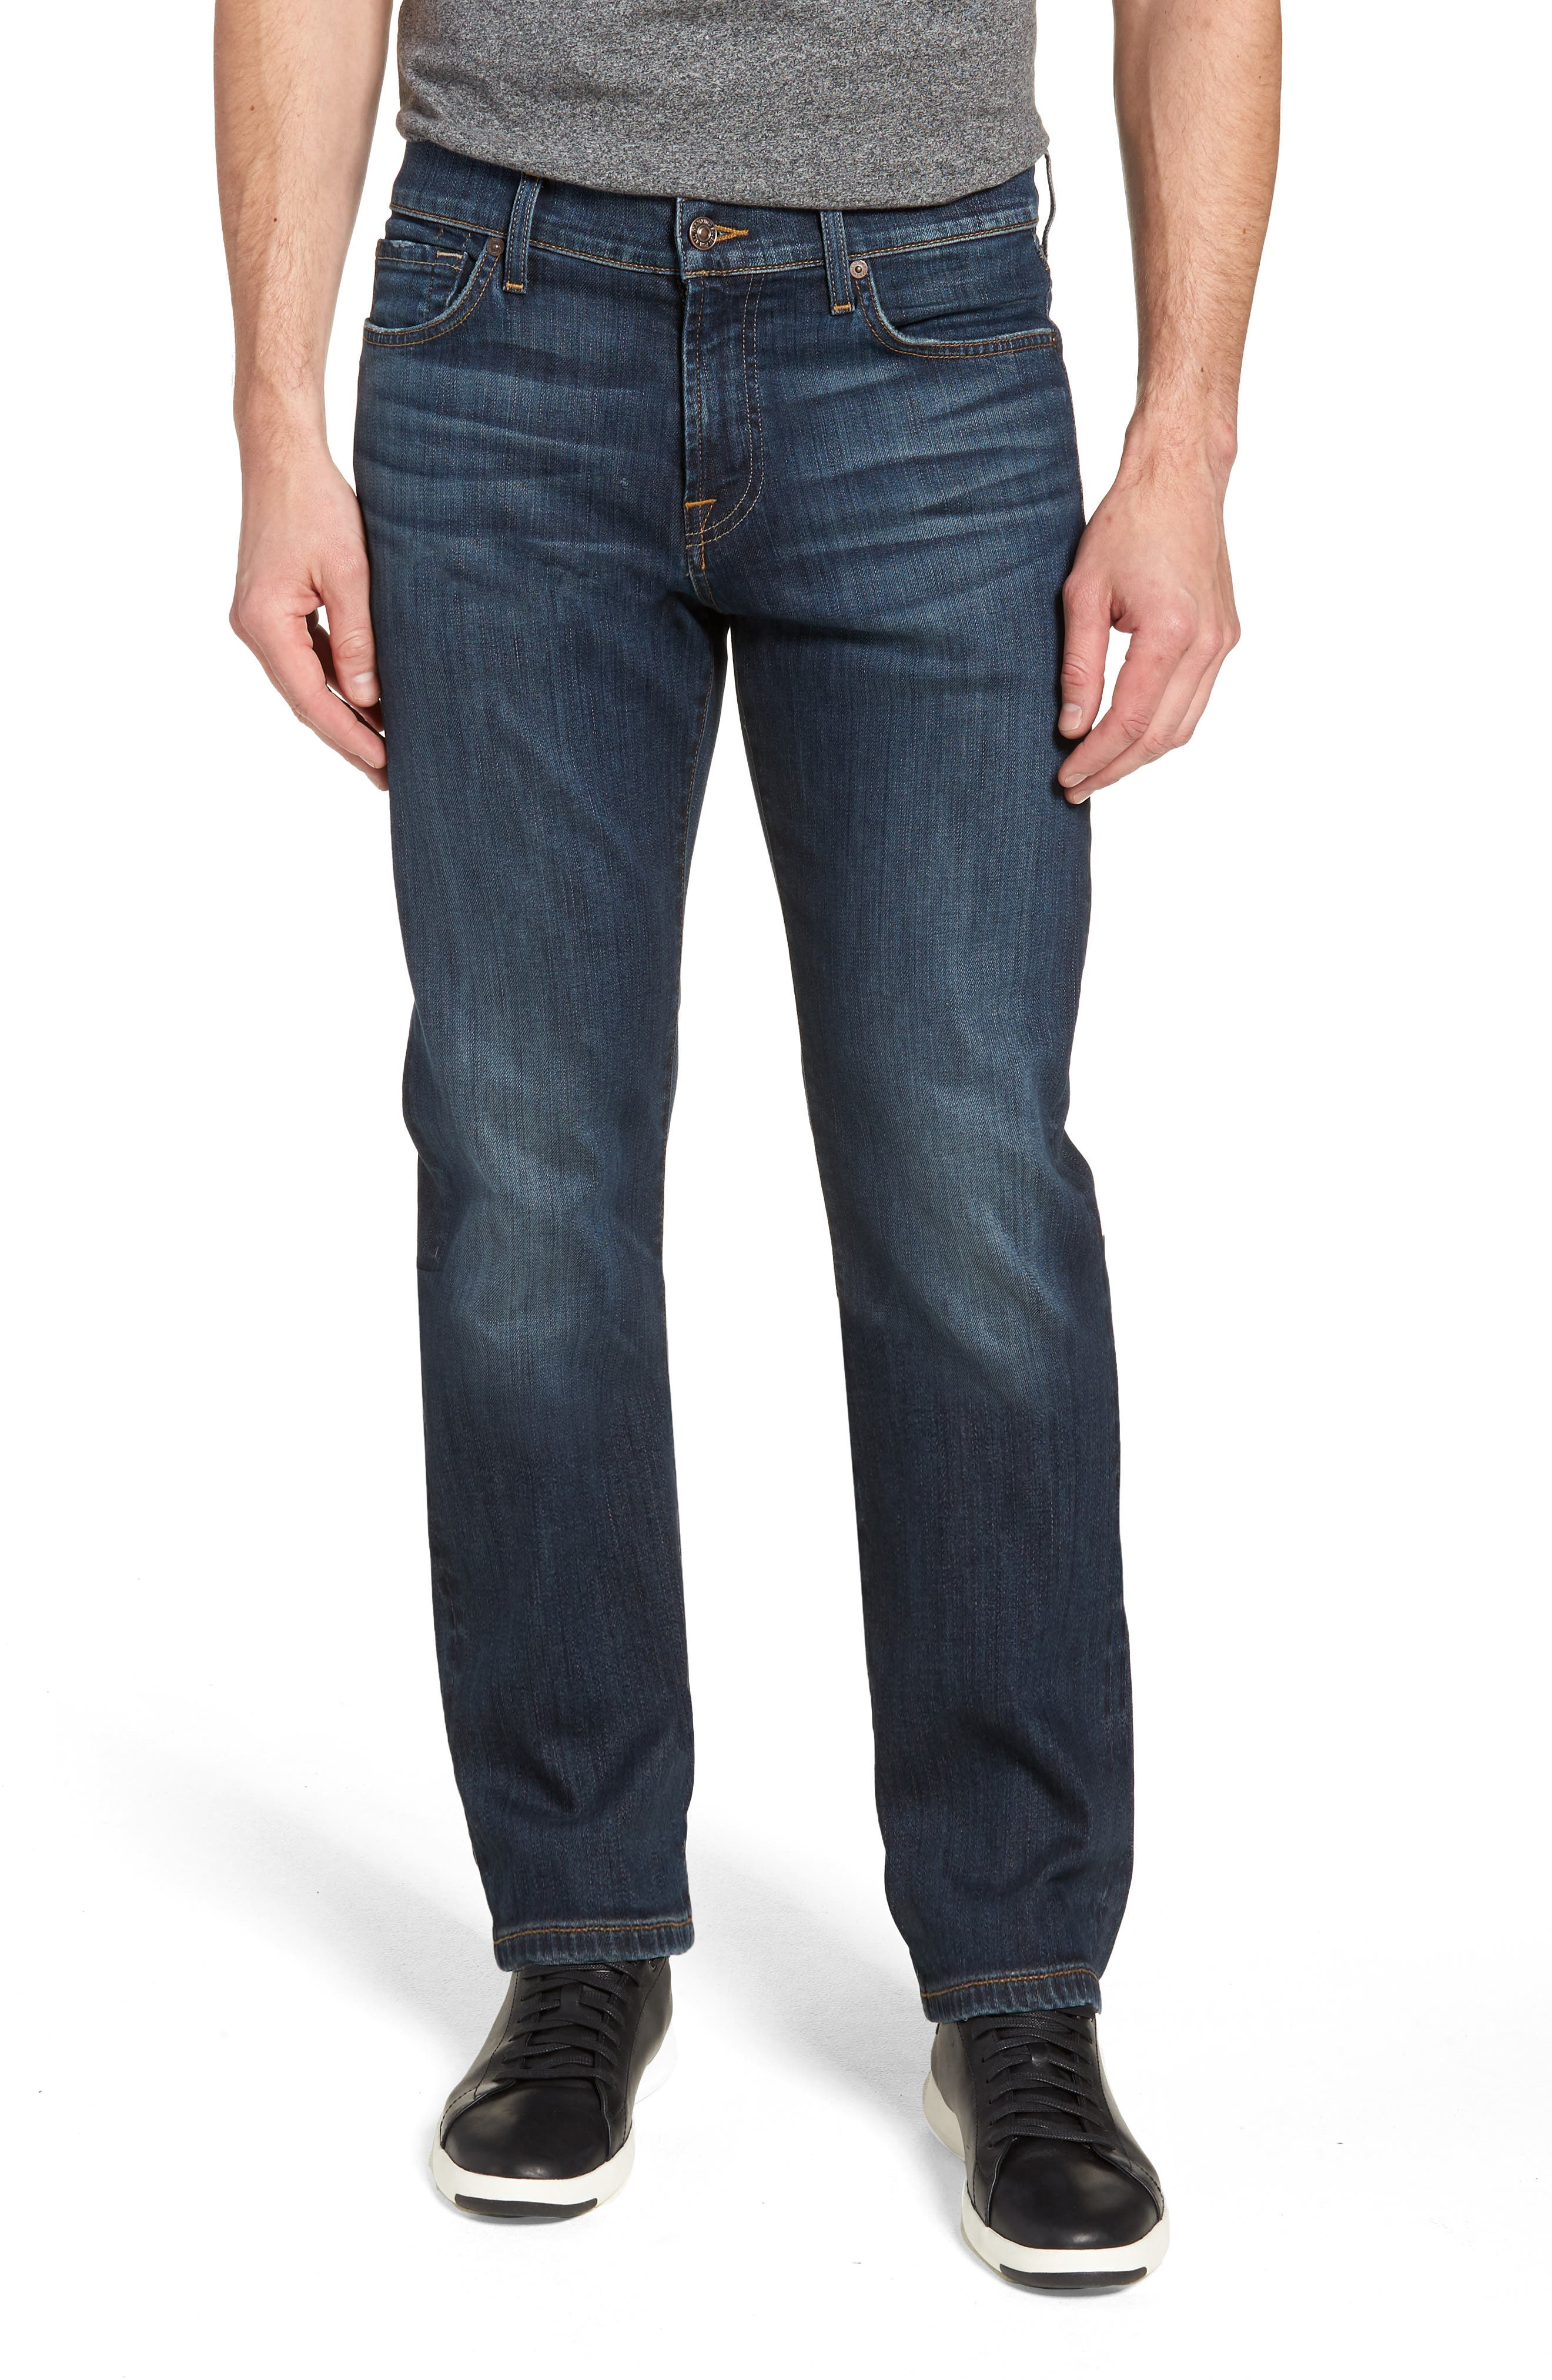 7 FOR ALL MANKIND<SUP>®</SUP>, Luxe Performance Standard Straight Leg Jeans, Main thumbnail 1, color, LUXE PERFORMANCE YELM